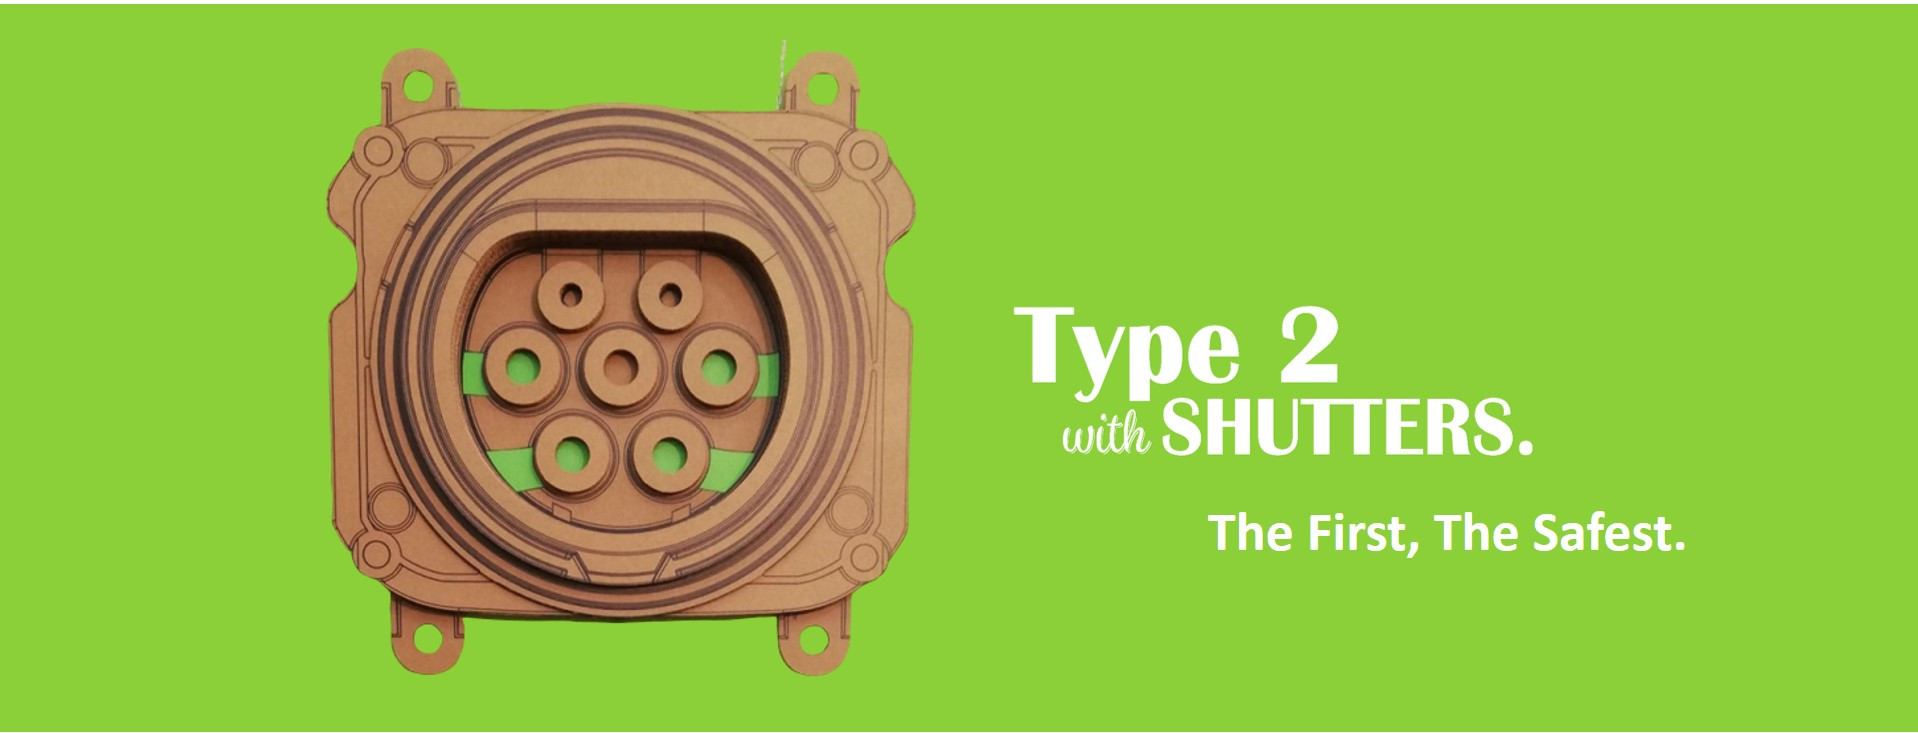 the-first-the-safest-t2-shutter-scame.jpg